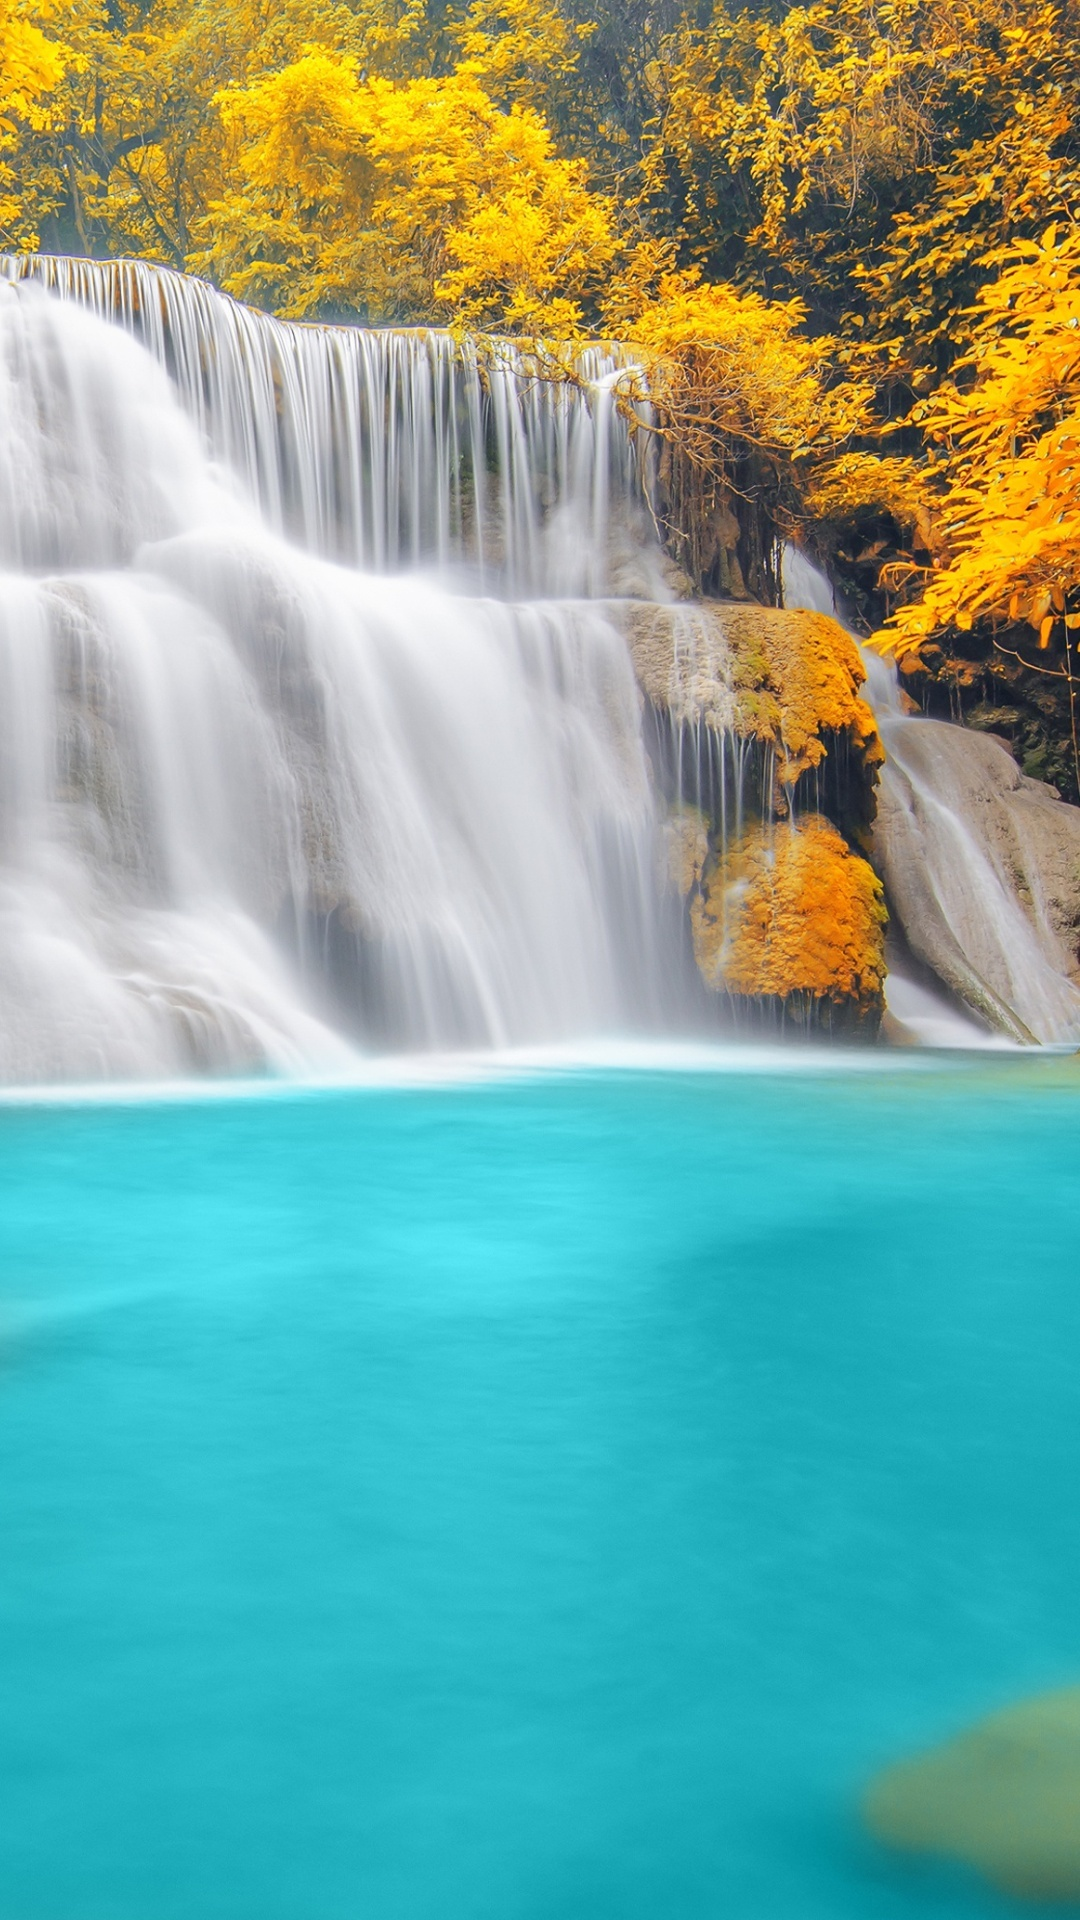 4k Waterfalls Wallpapers High Quality Download Free